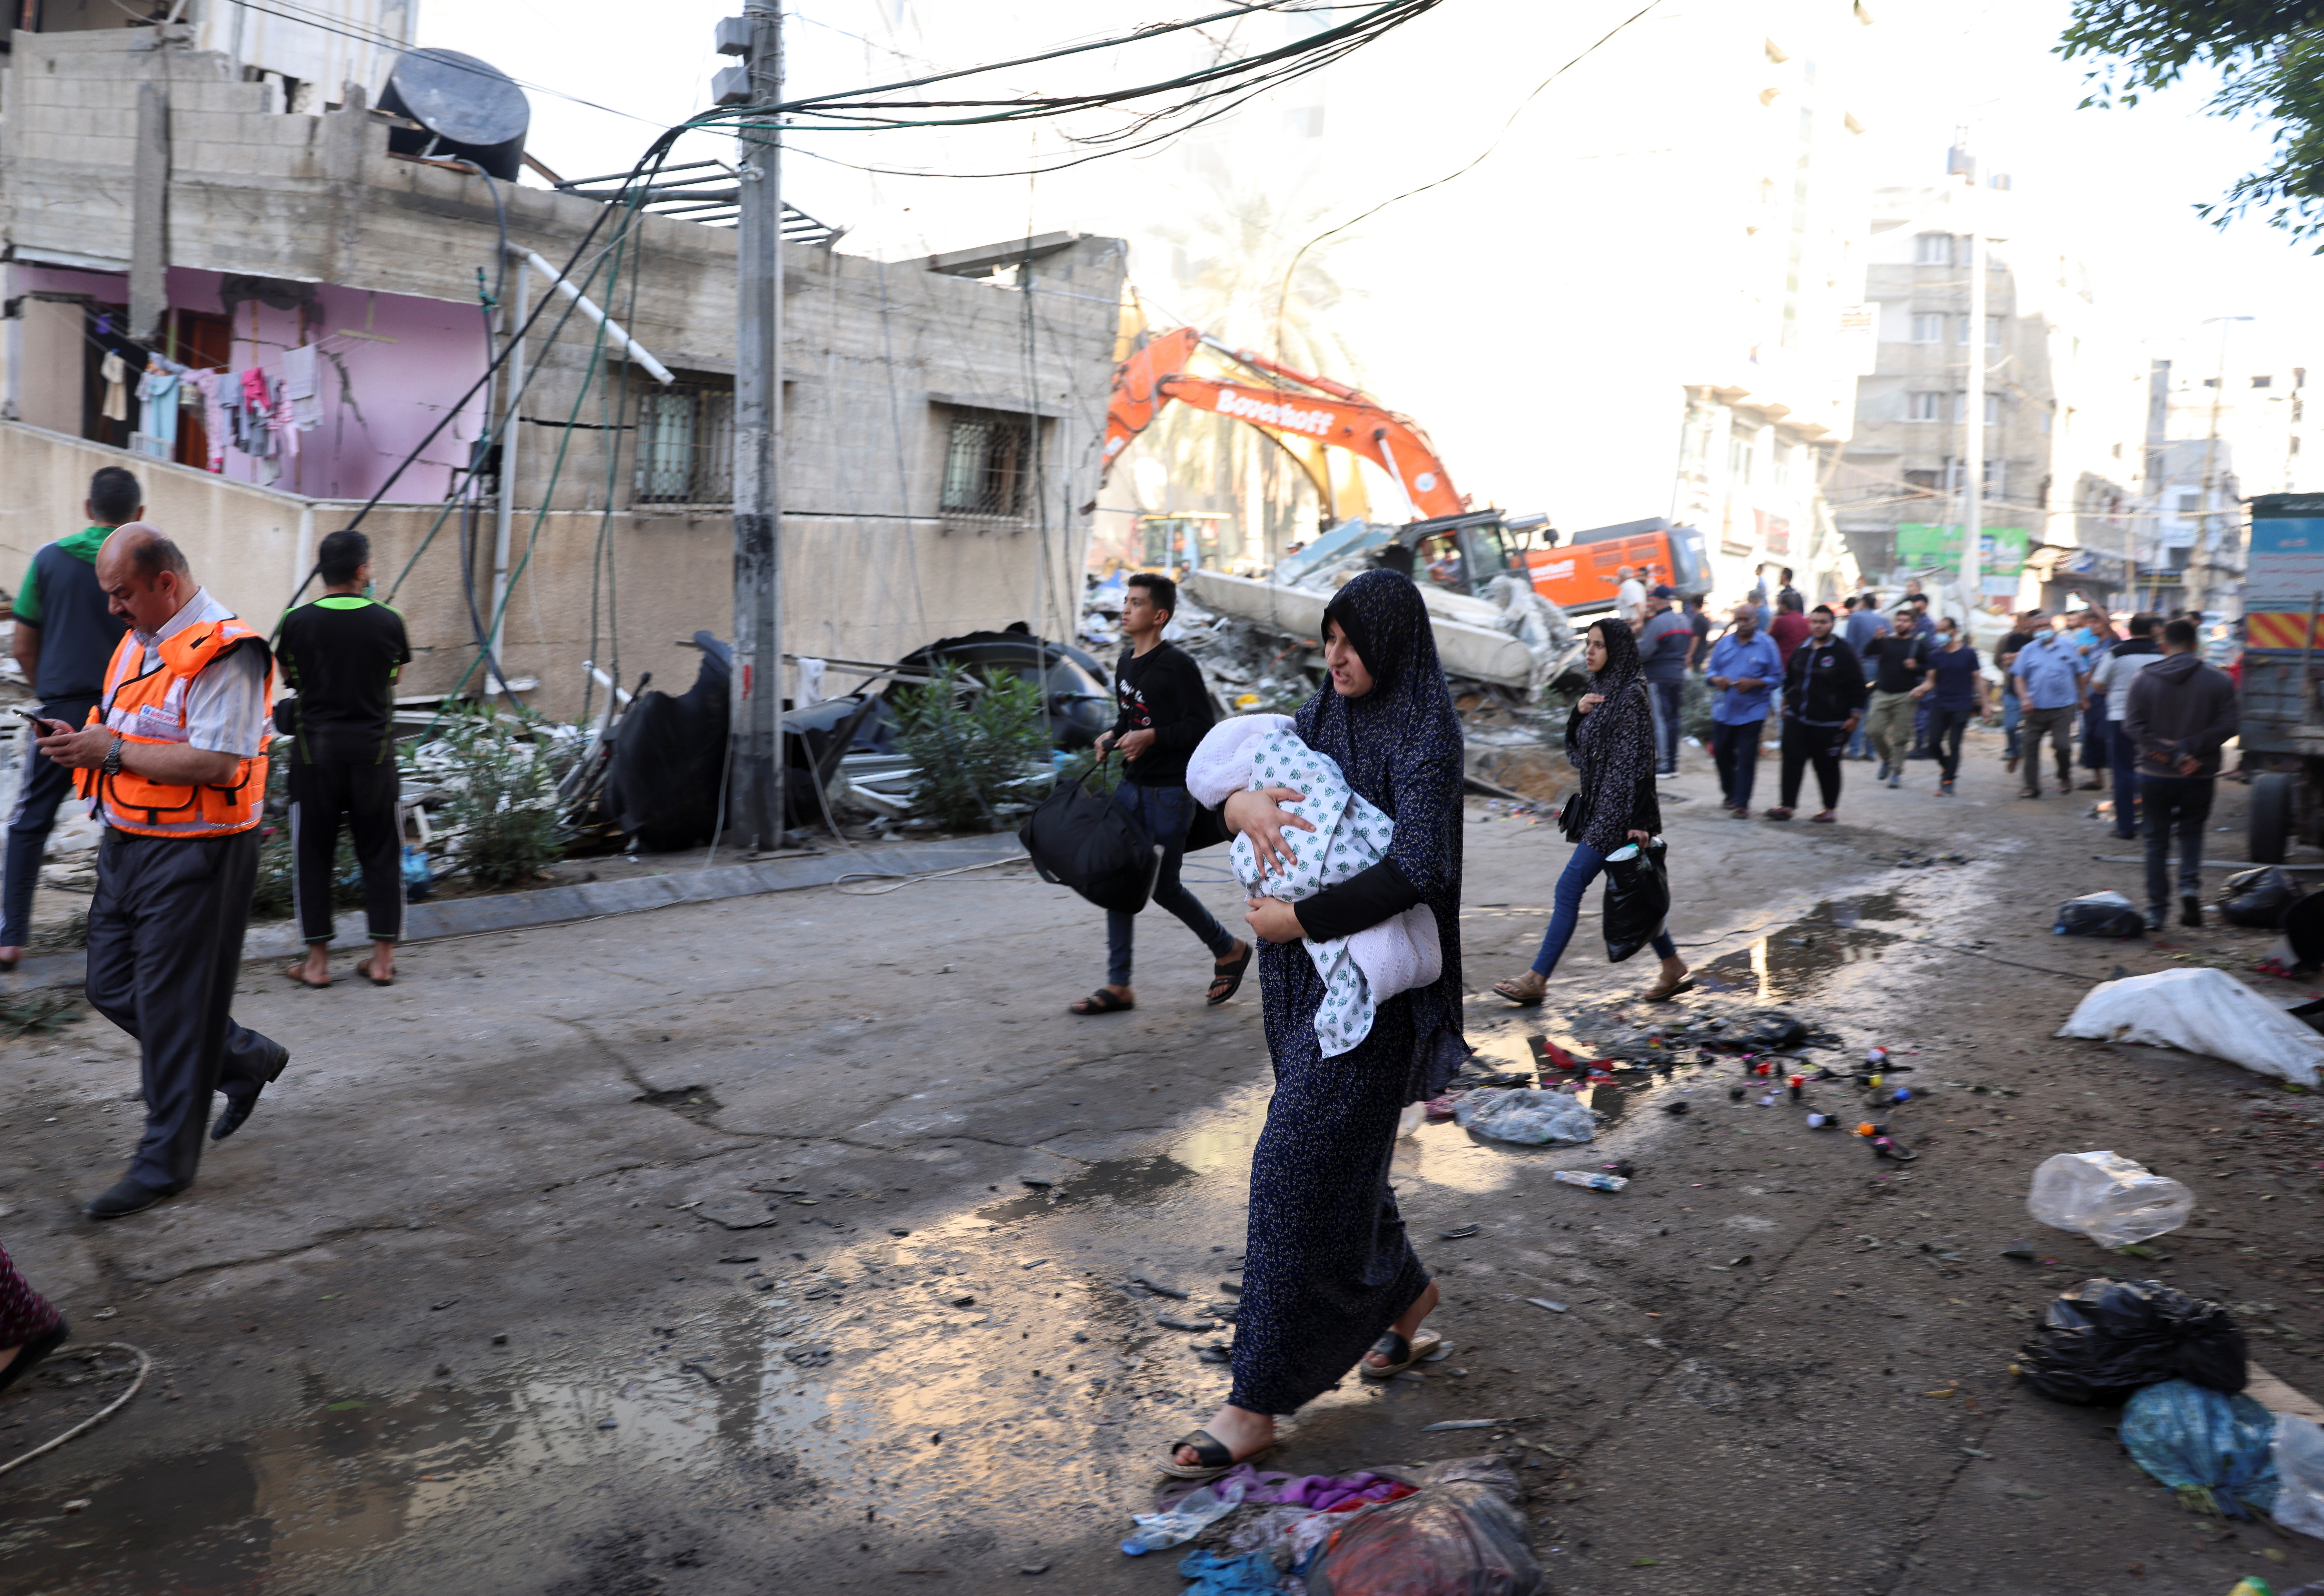 People walk past debris in a street at the site of Israeli air strikes, in Gaza City May 16, 2021. REUTERS/Mohammed Salem